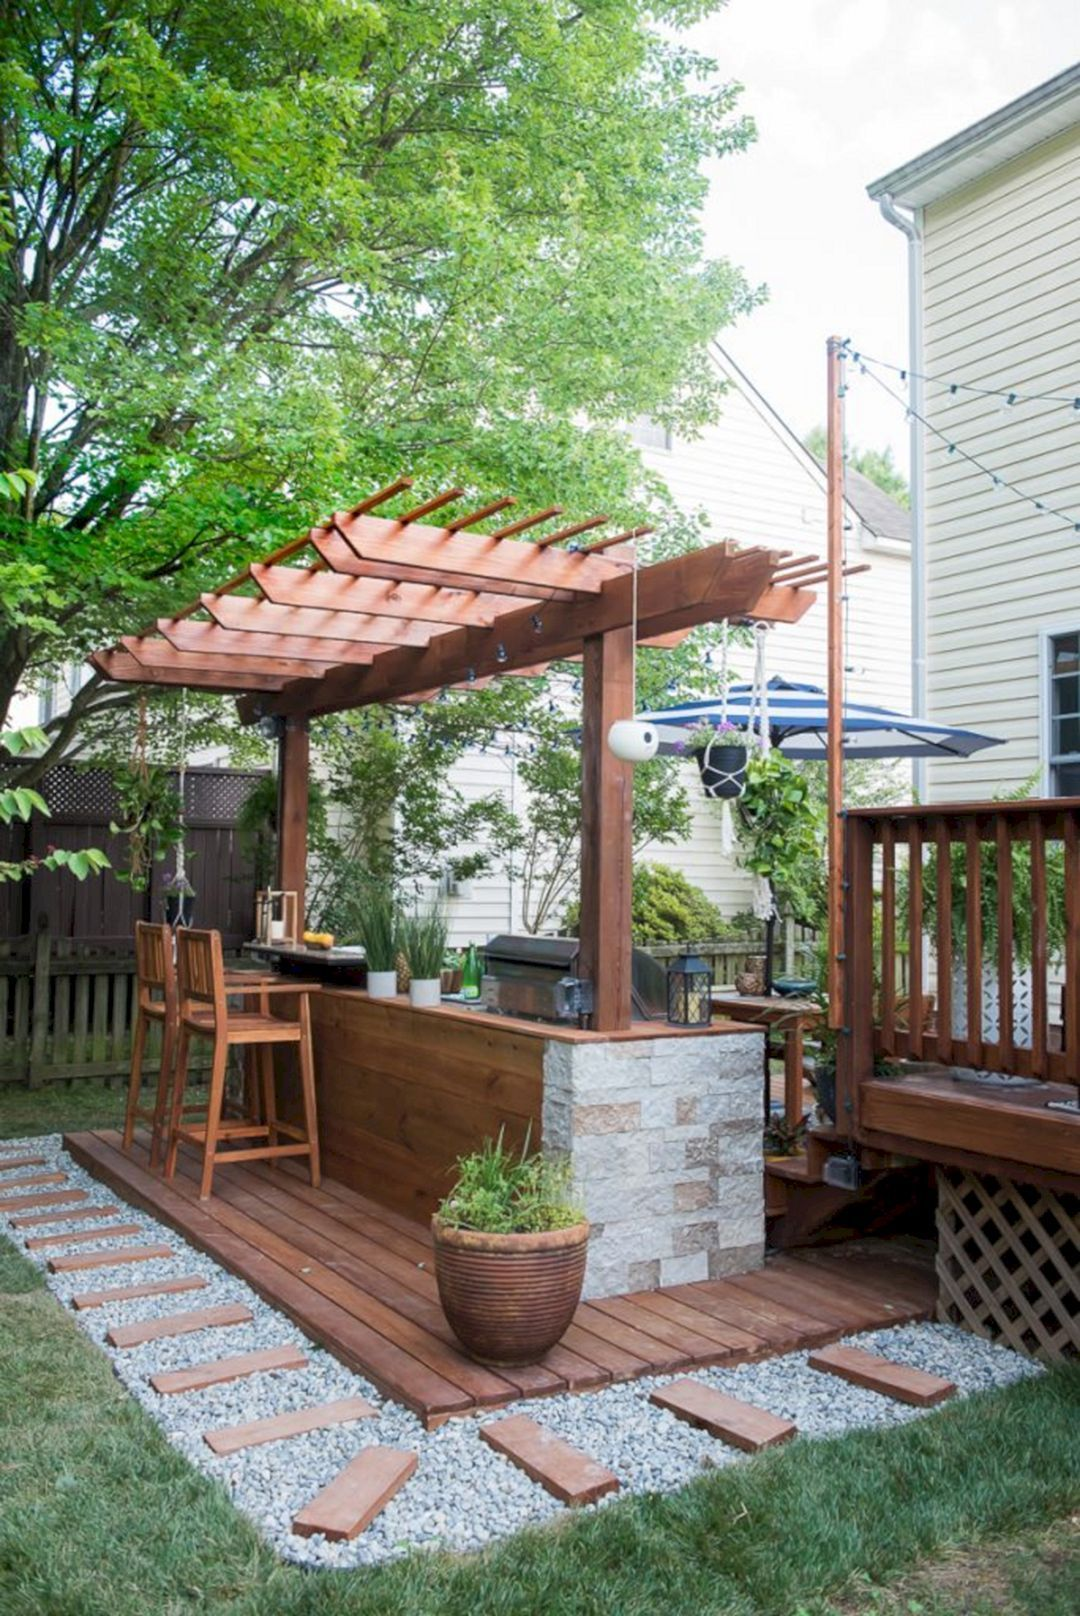 30 Outdoor Kitchen And Grill Inspiration For Any Area Outdoor Kitchen Design Diy Outdoor Kitchen Backyard Pergola